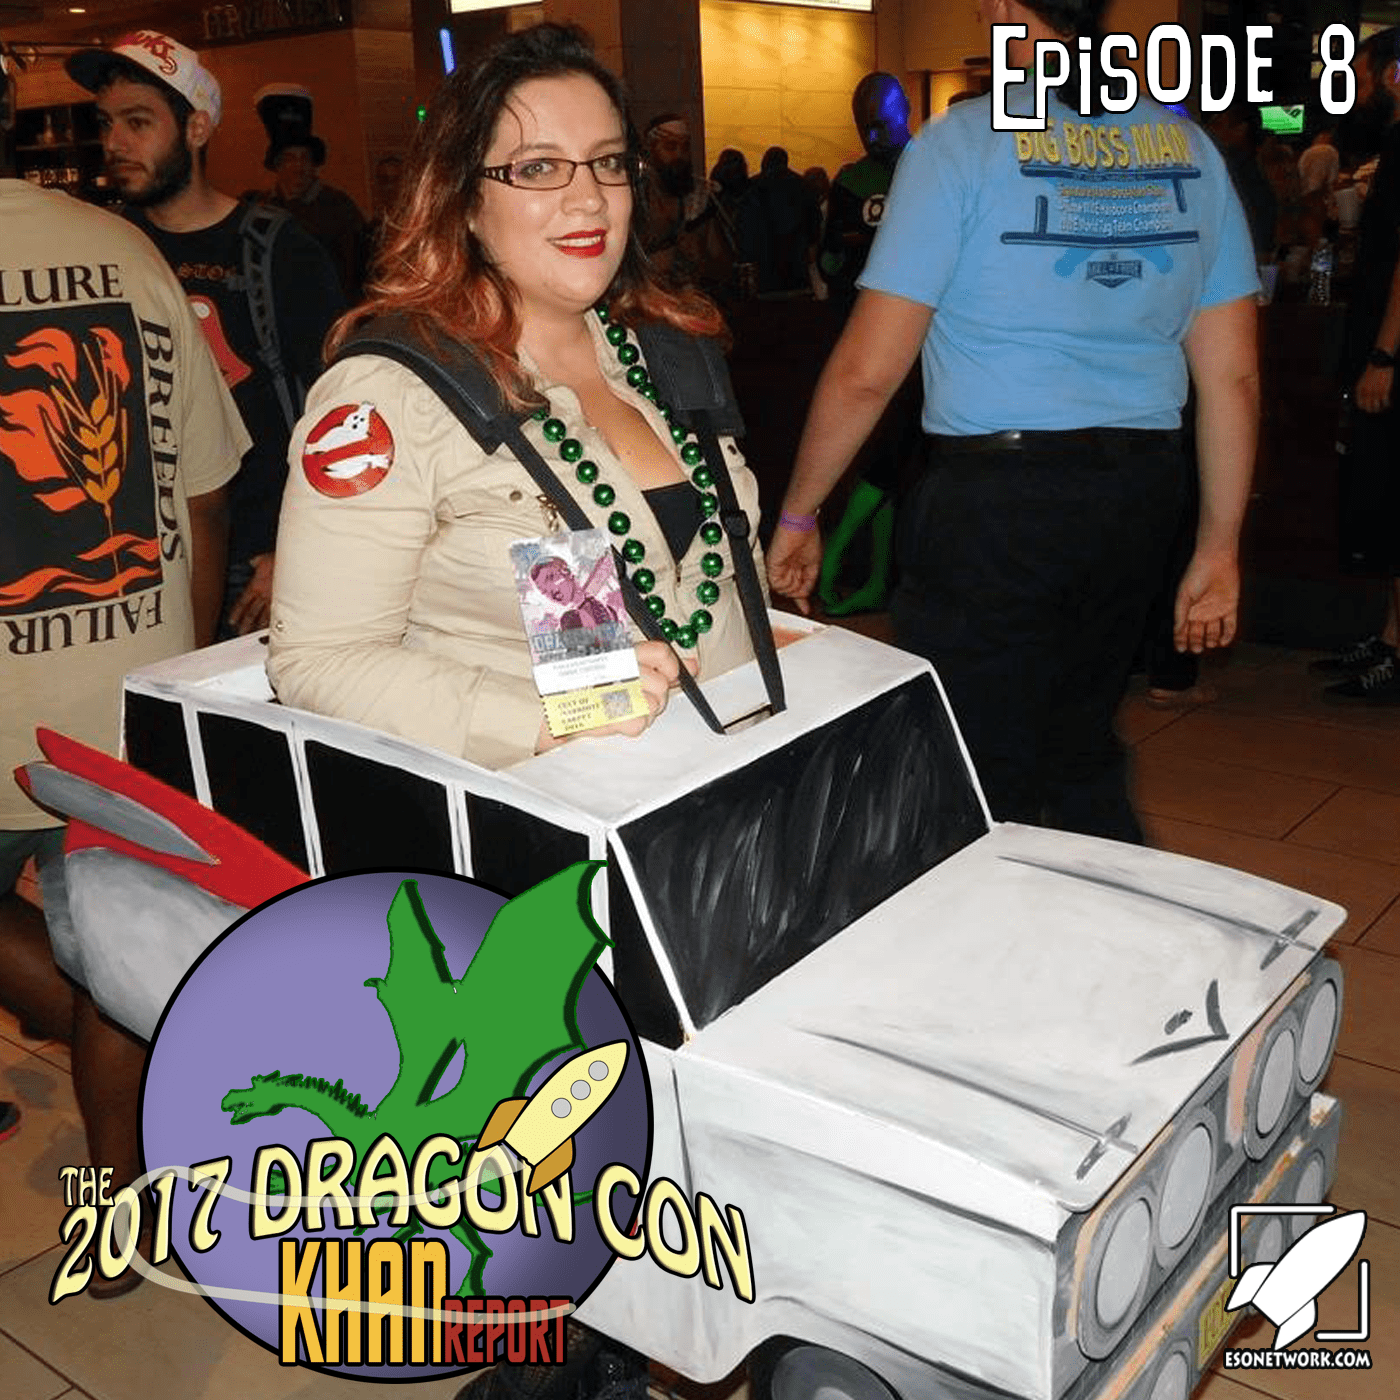 The 2017 Dragon Con Khan Report Ep 8